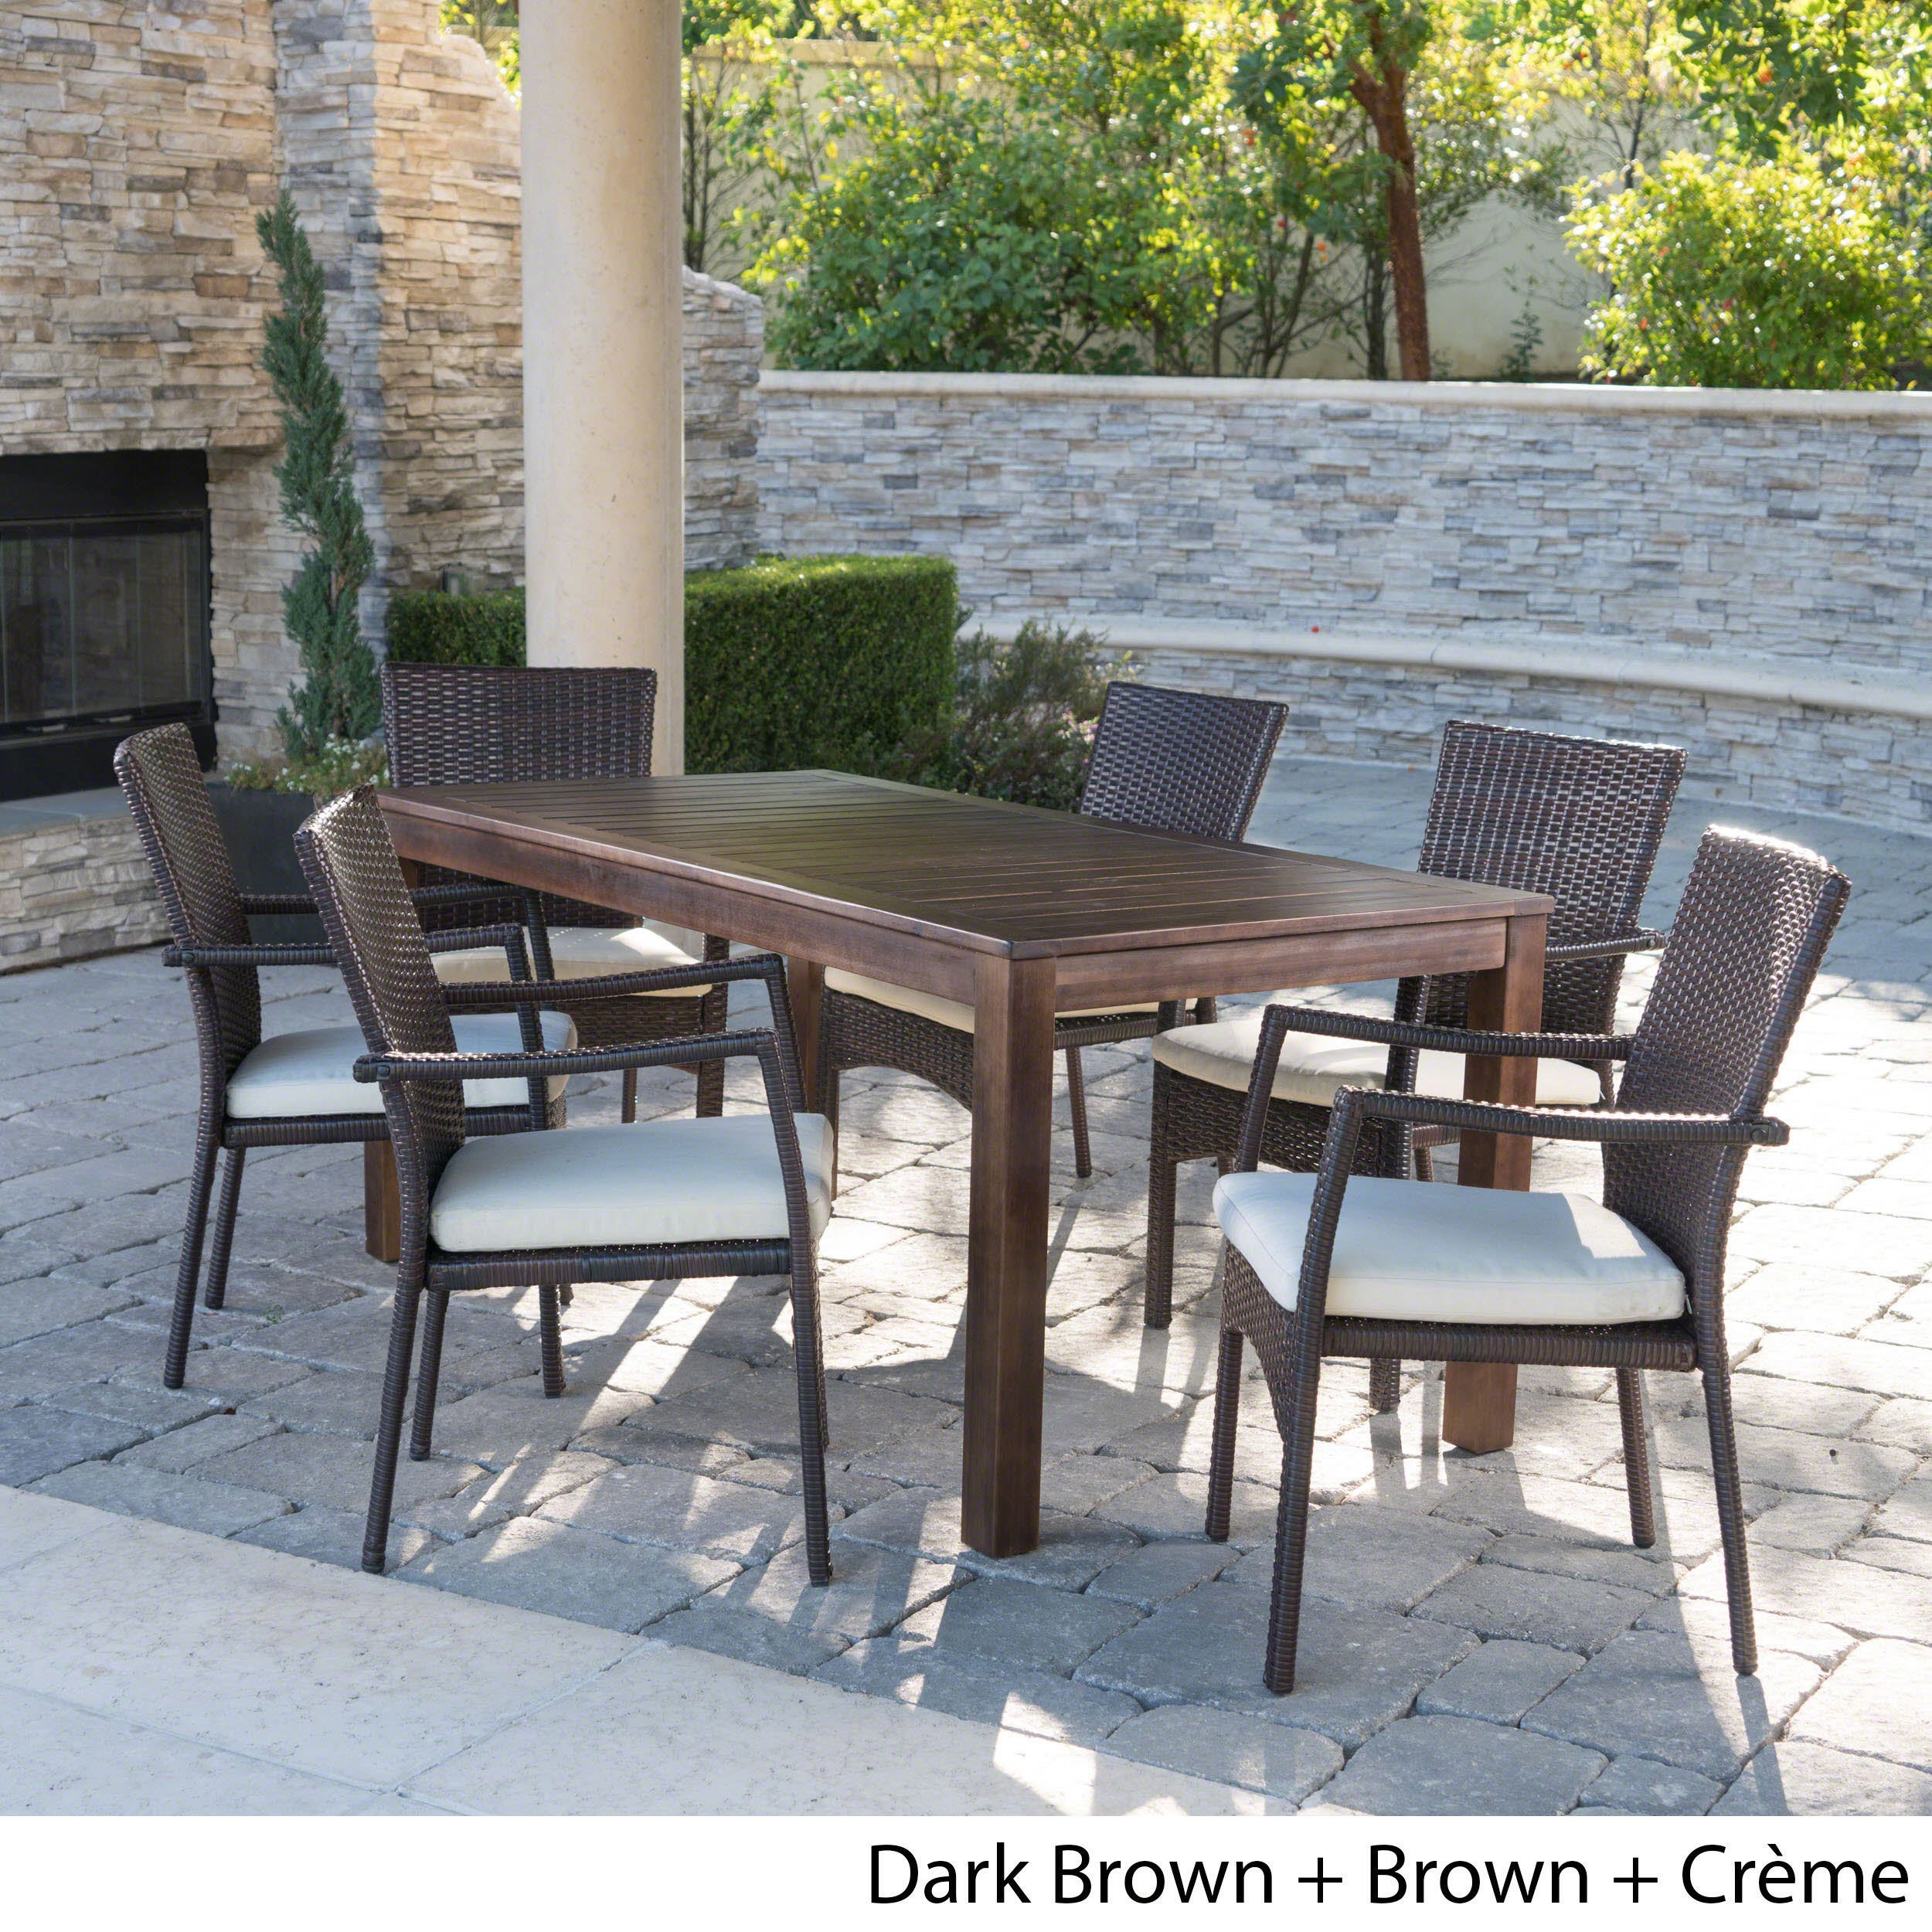 Shop geelong outdoor 7 piece rectangle aluminum wicker wood dining set with cushions by christopher knight home on sale free shipping today overstock